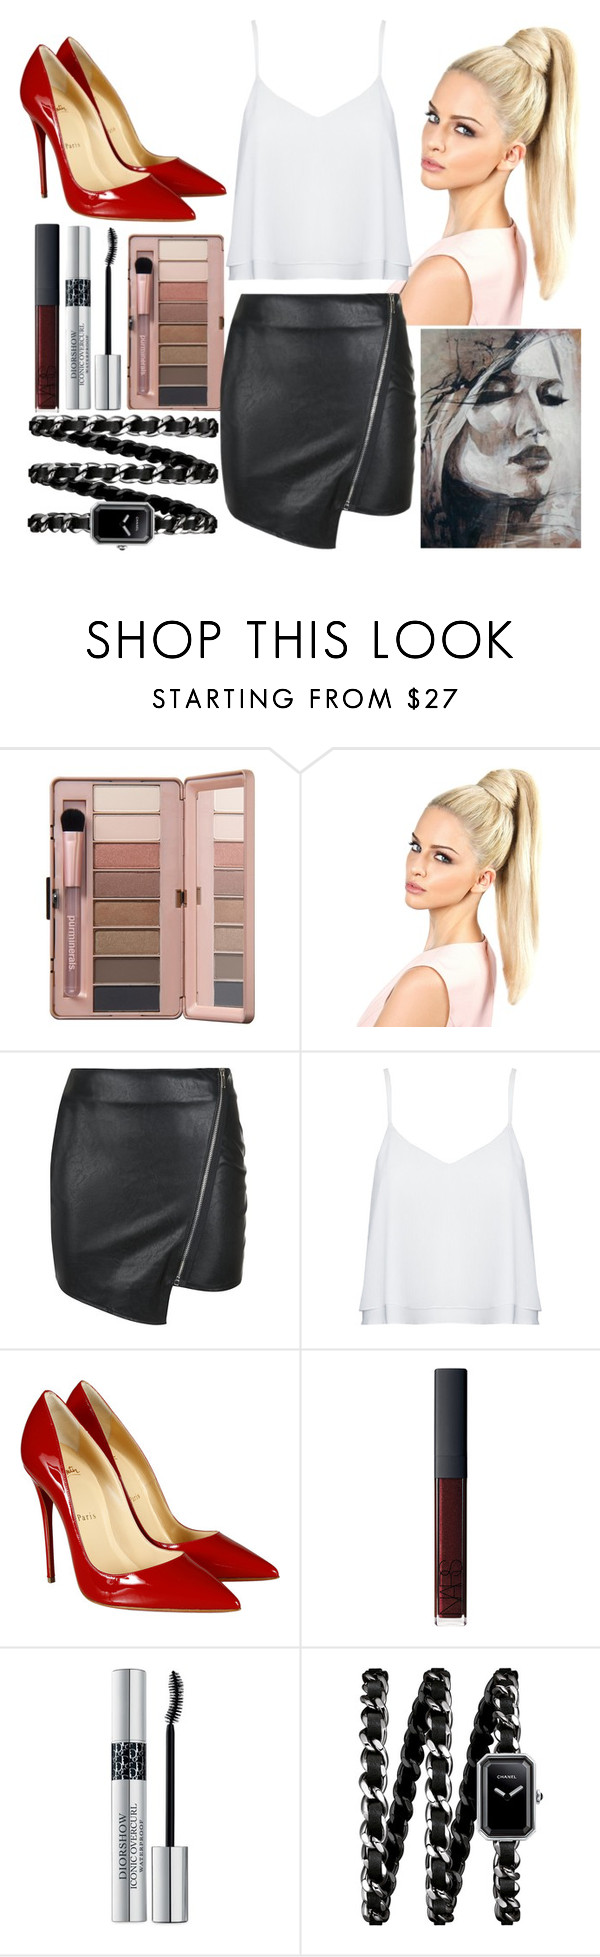 """""""Sin título #814"""" by candiibella ❤ liked on Polyvore featuring Parisian, Alice + Olivia, Christian Louboutin, NARS Cosmetics, Christian Dior, Chanel, women's clothing, women's fashion, women and female"""